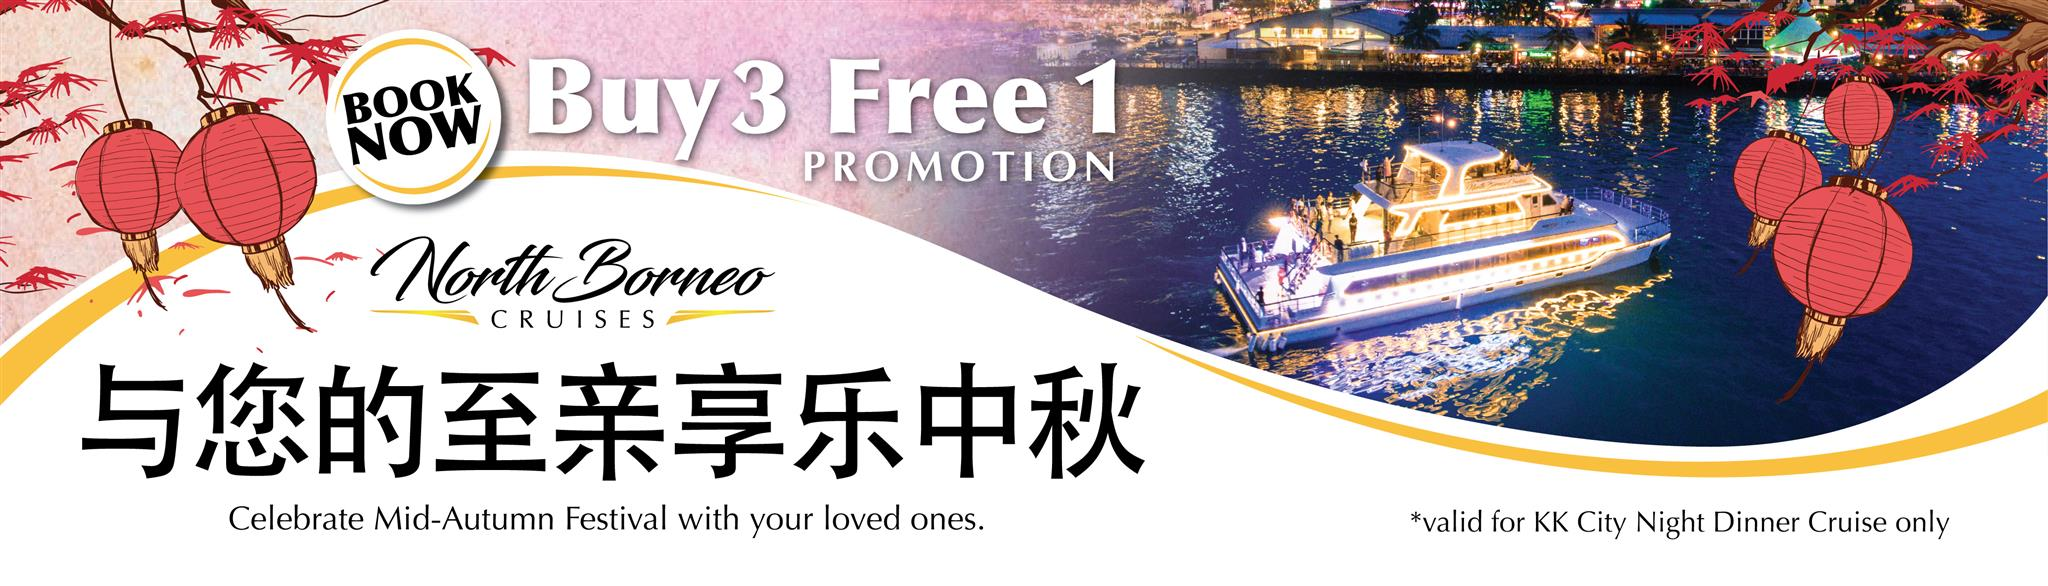 Buy 3 Free 1 Mid-Autumn Festival Promotion